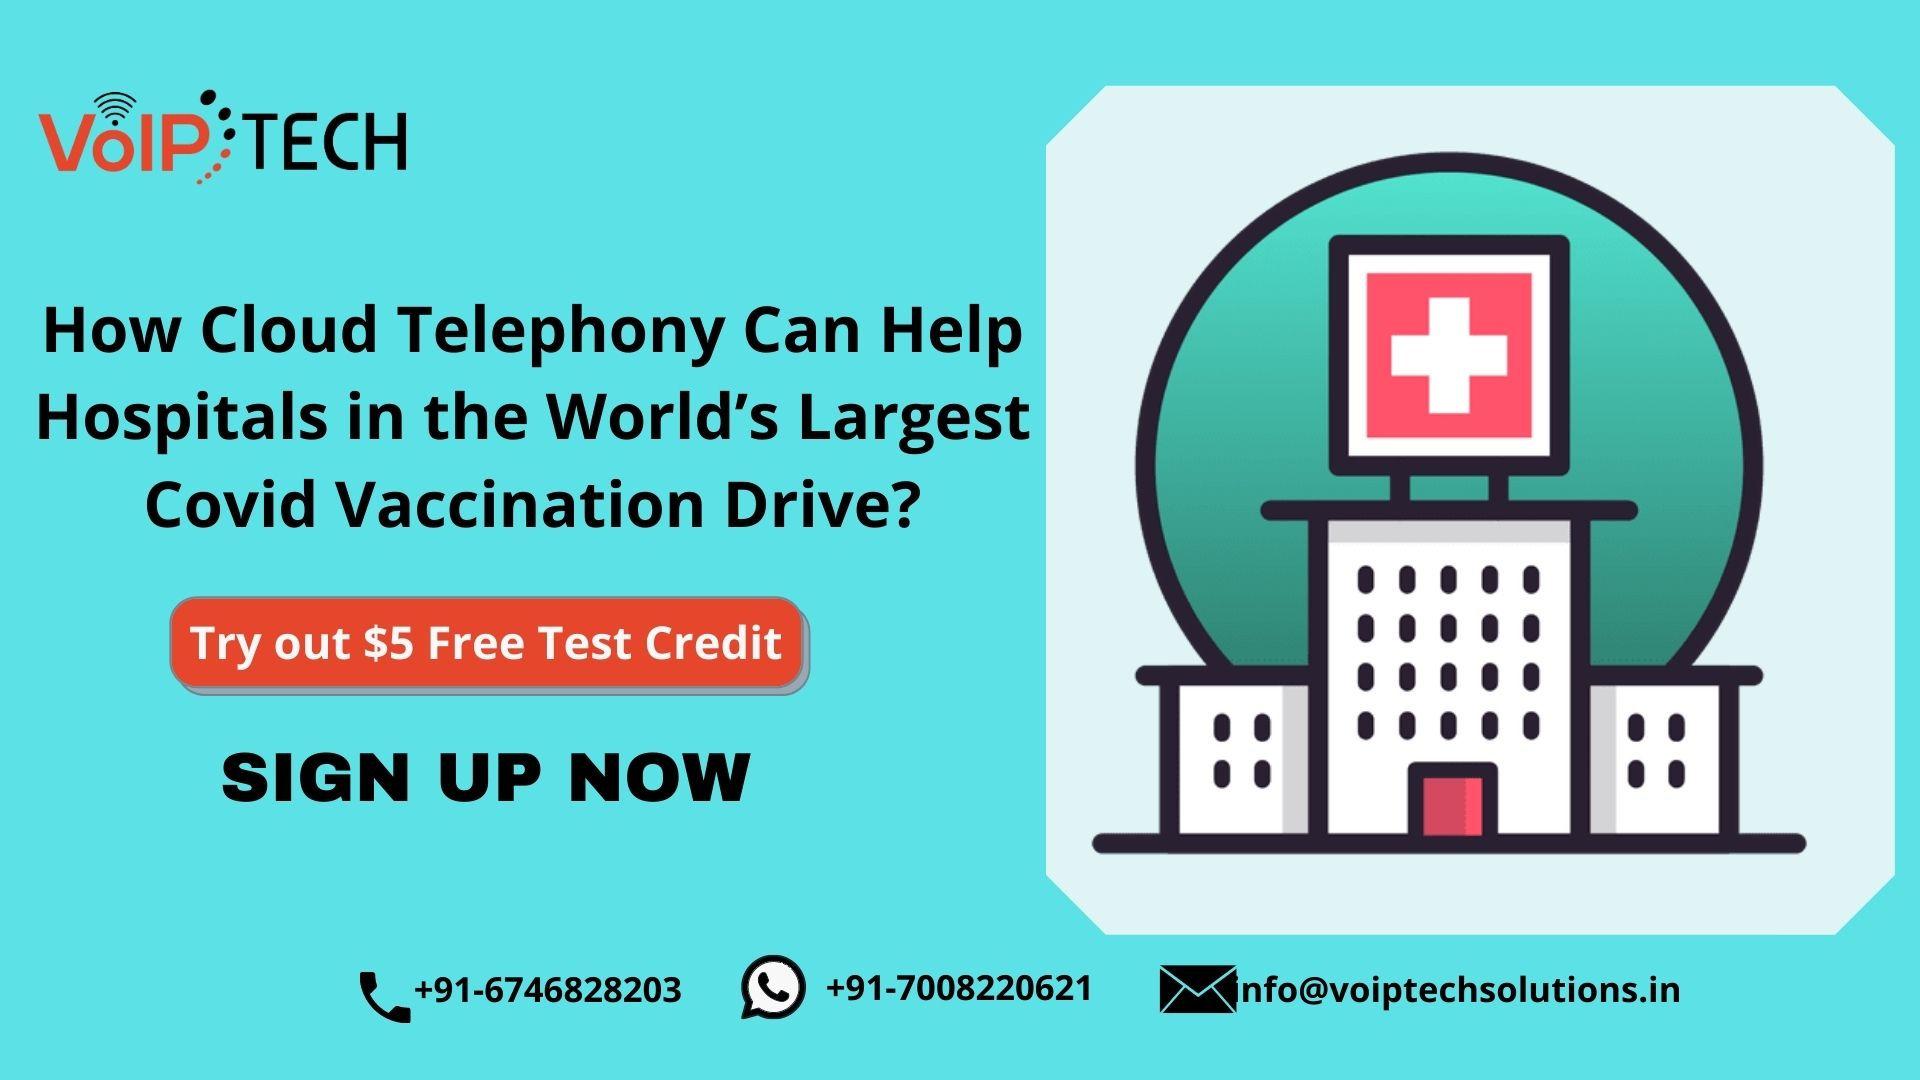 How Cloud Telephony Can Help Hospitals in the World's Largest Covid Vaccination Drive?, Cloud Telephony, VoIP tech solutions, vici dialer, virtual number, Voip Providers, voip services in india, best sip provider, business voip providers, VoIP Phone Numbers, voip minutes provider, top voip providers, voip minutes, International VoIP Provider